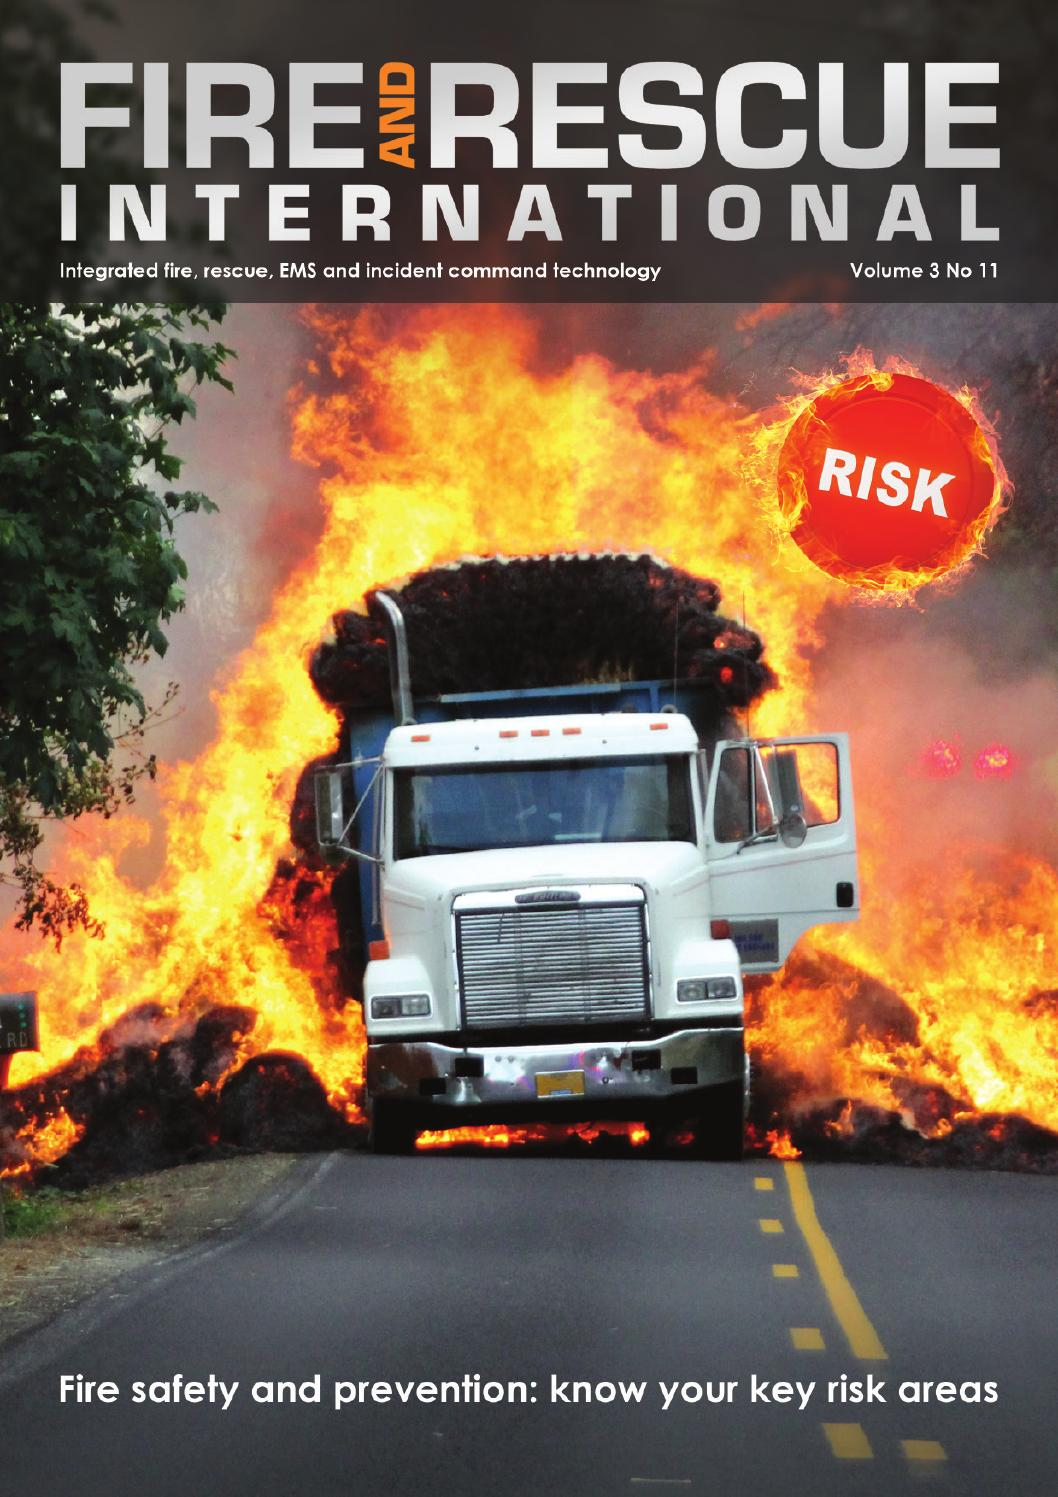 Fire and Rescue International Vol 3 No 11 by Fire and Rescue International  - issuu